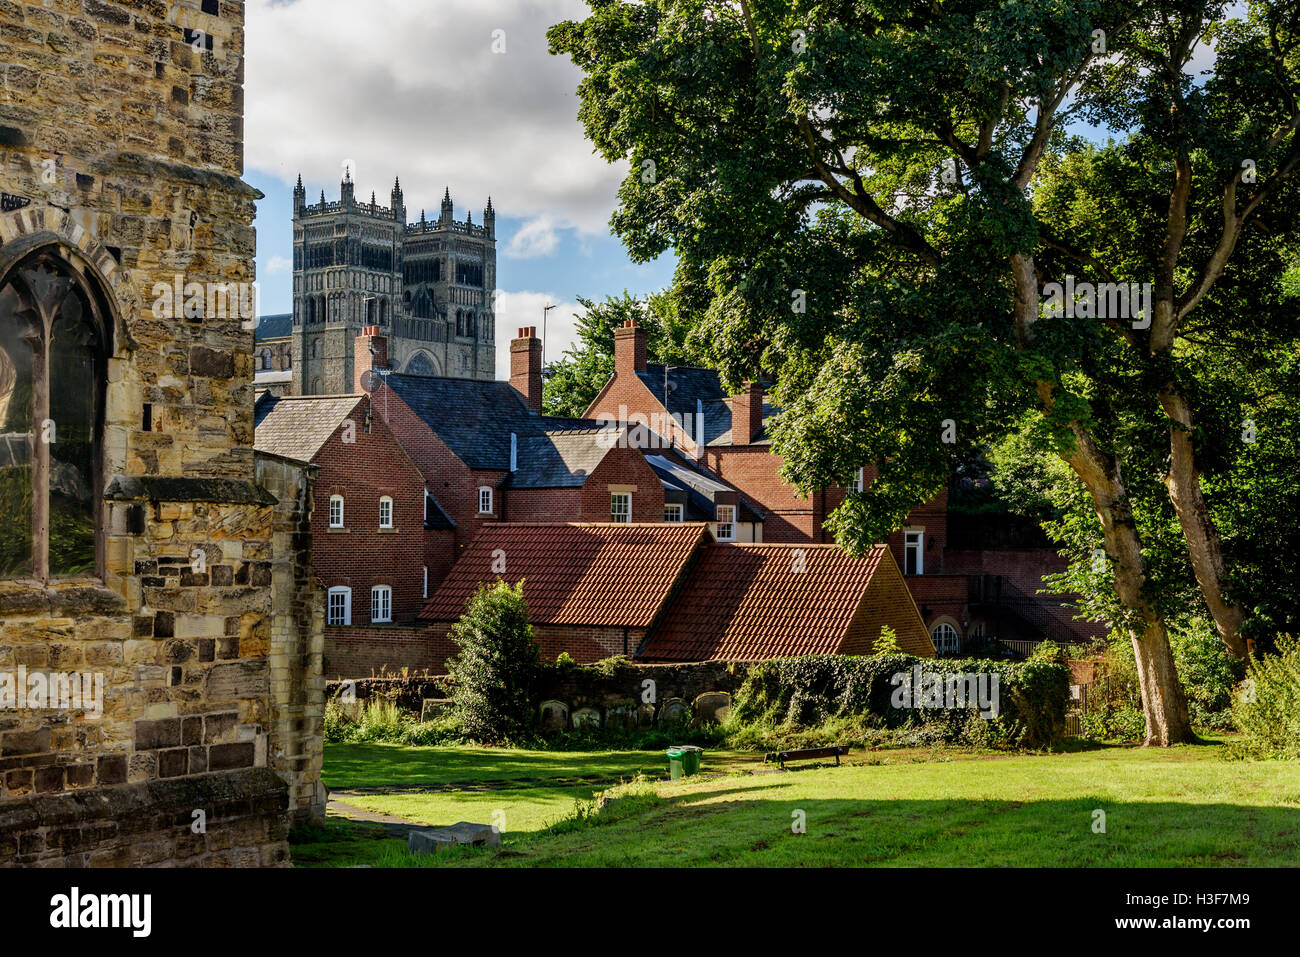 Durham is a historic city and the county town of County Durham in North East England. - Stock Image